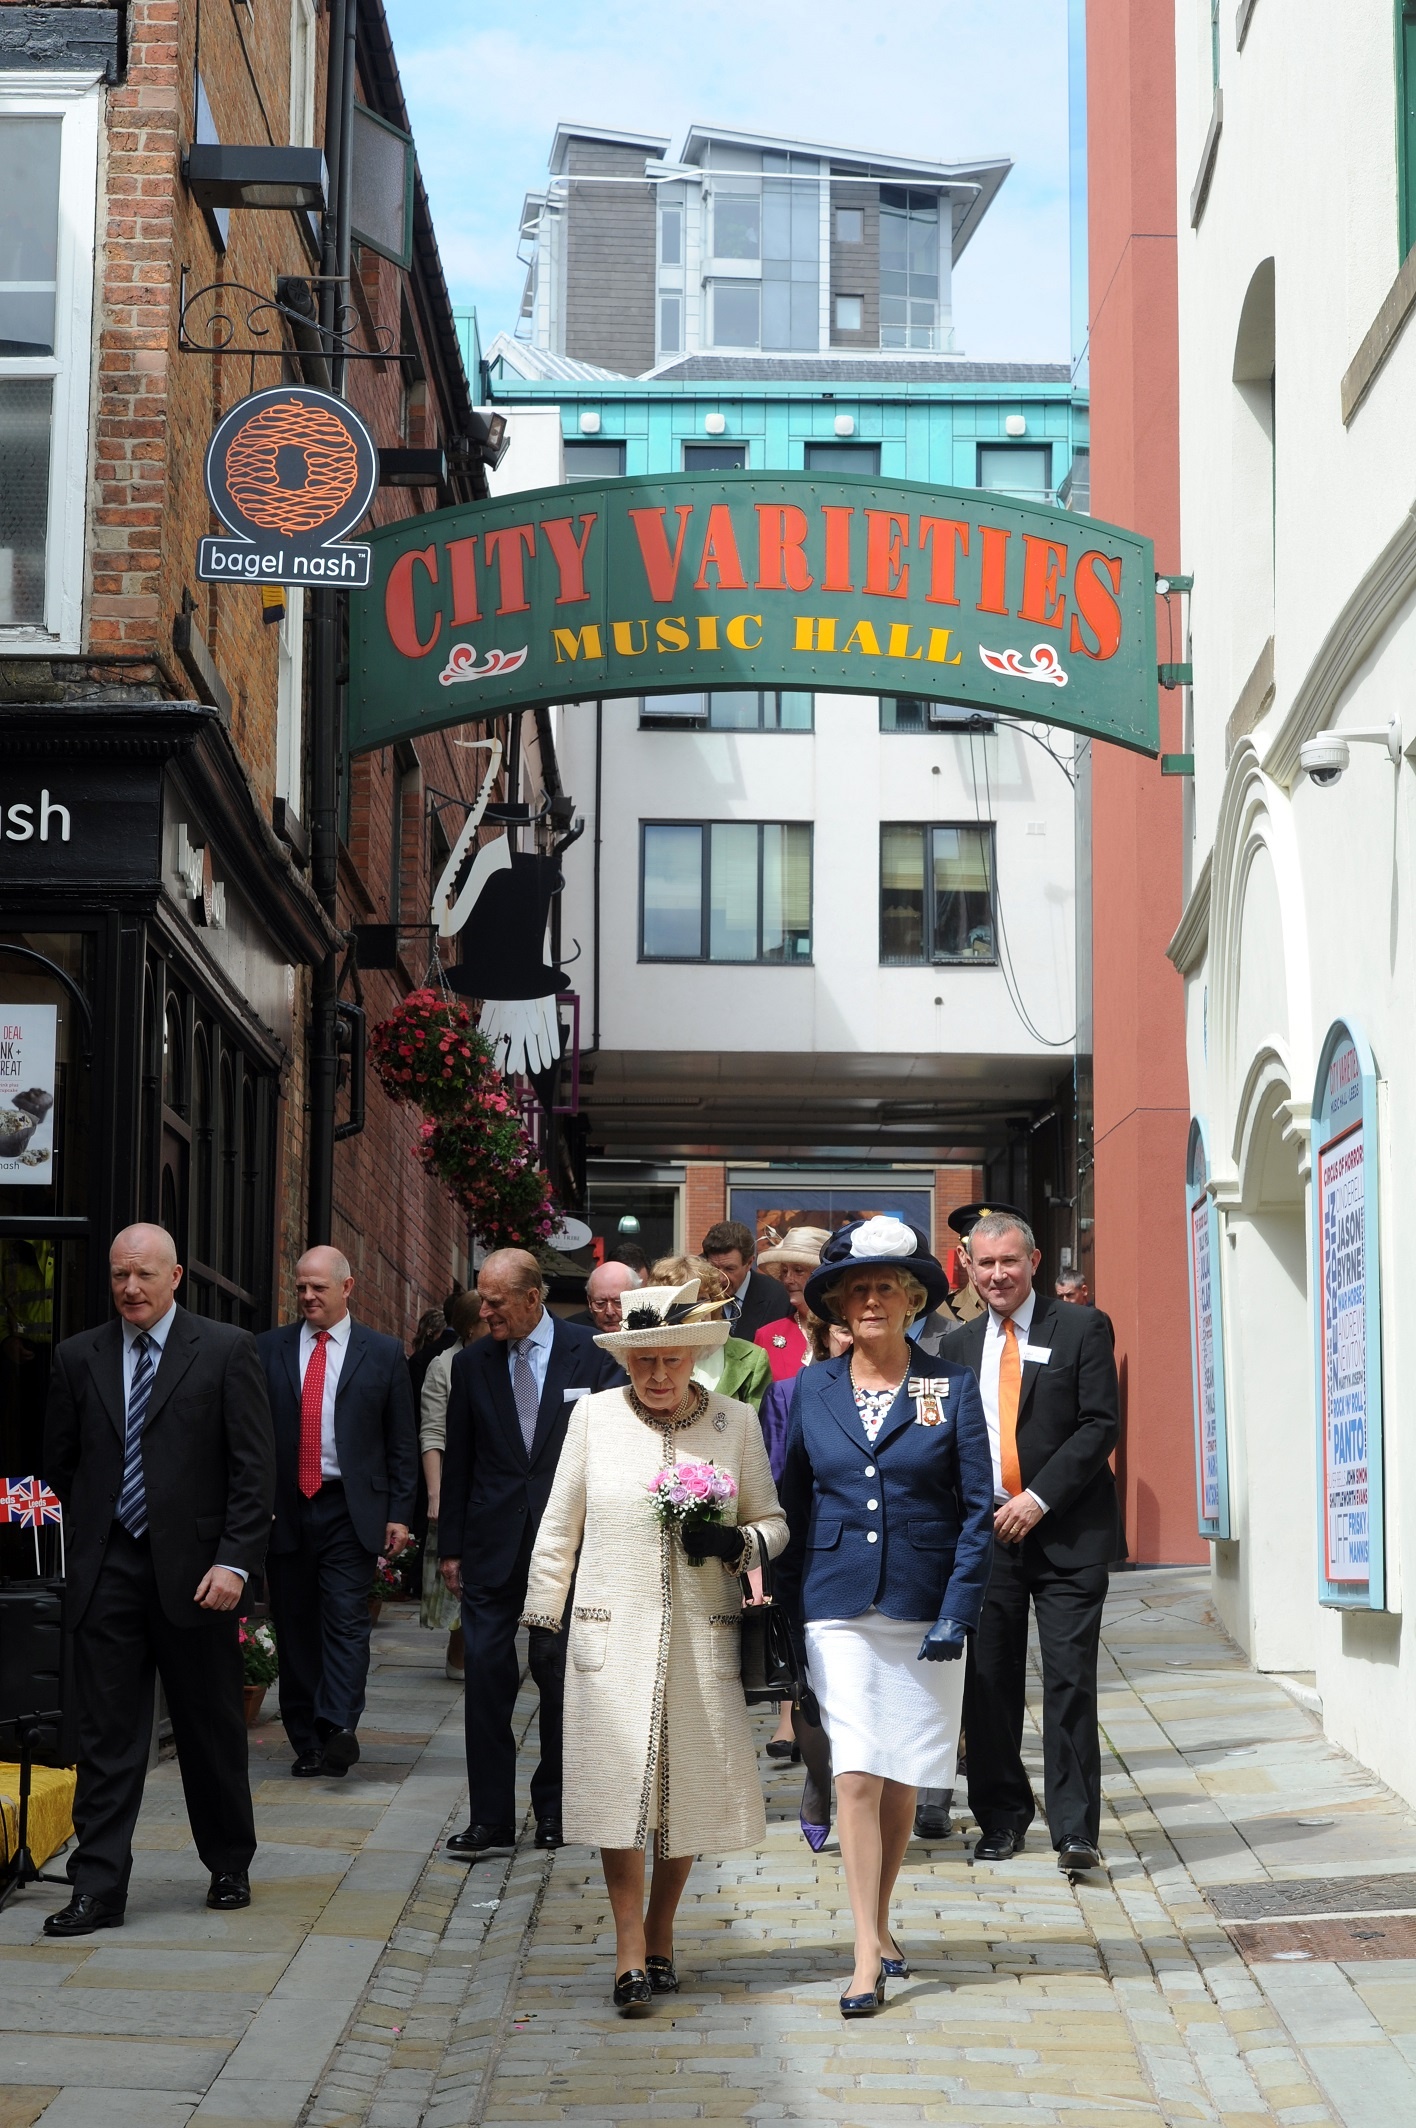 The Queen wearing a cream dress and hat followed by a group of people in suits walked down a narrow road. The sign above her reads City Varieties Music Hall.